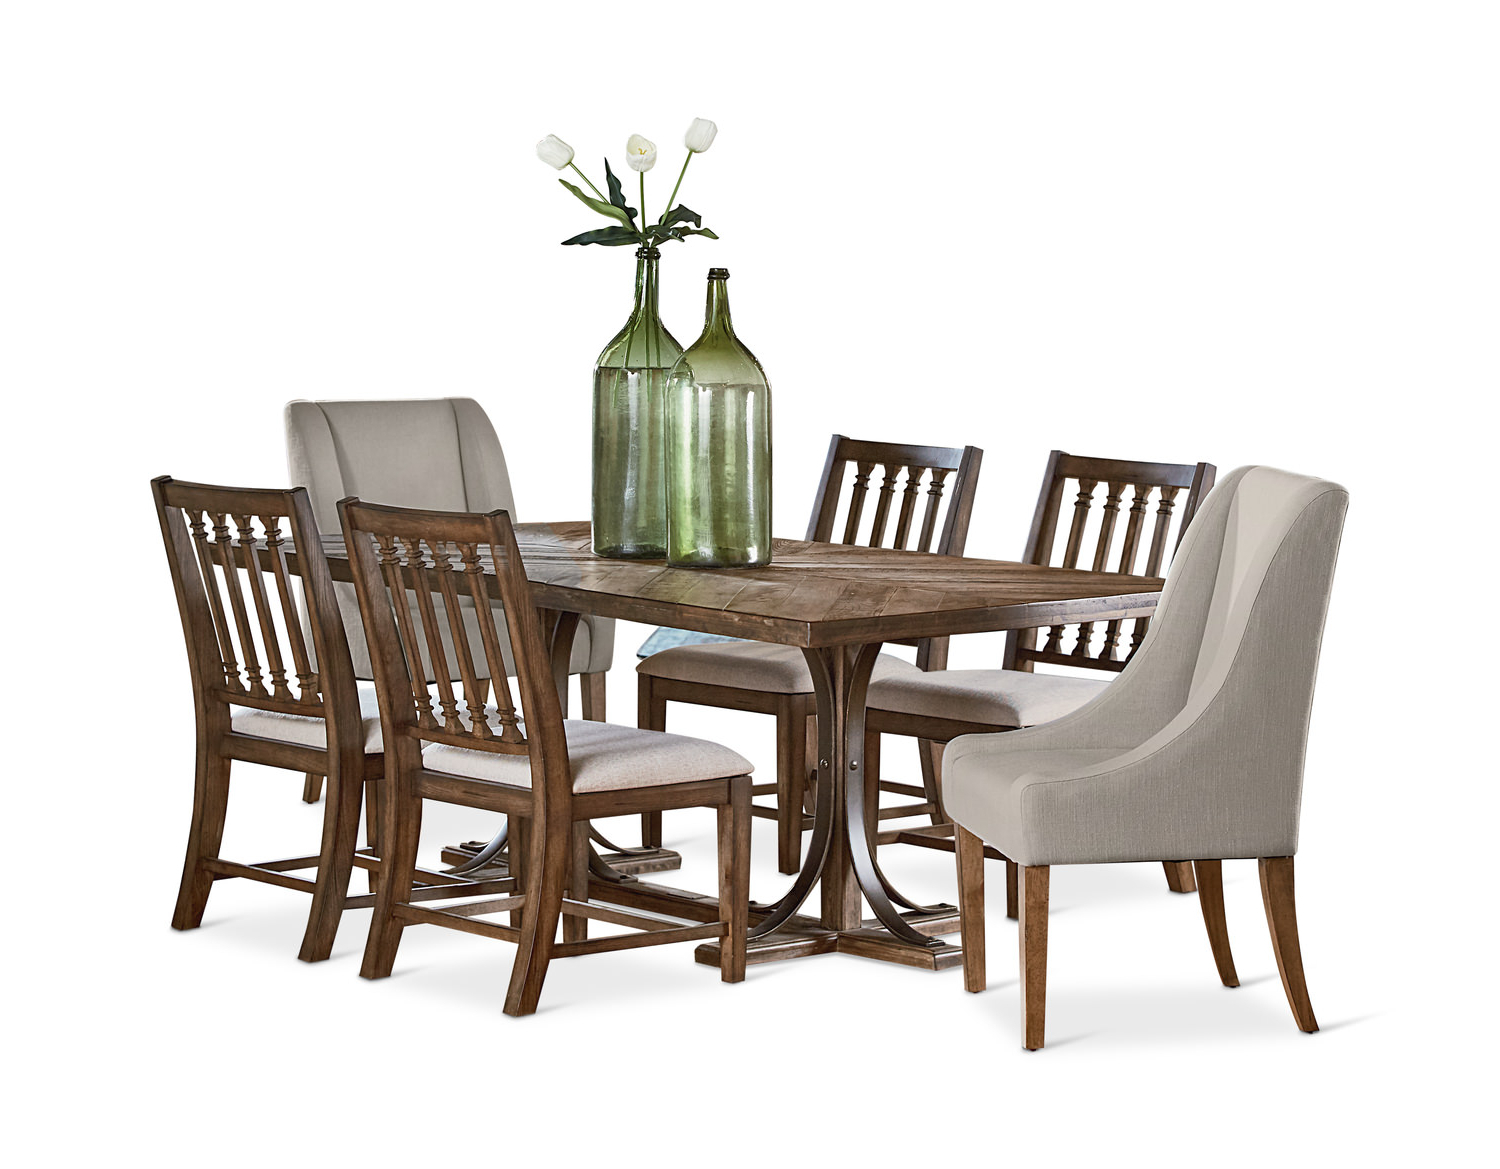 Fashionable Trestle Dining Table With 4 Revival Side And (View 13 of 20)